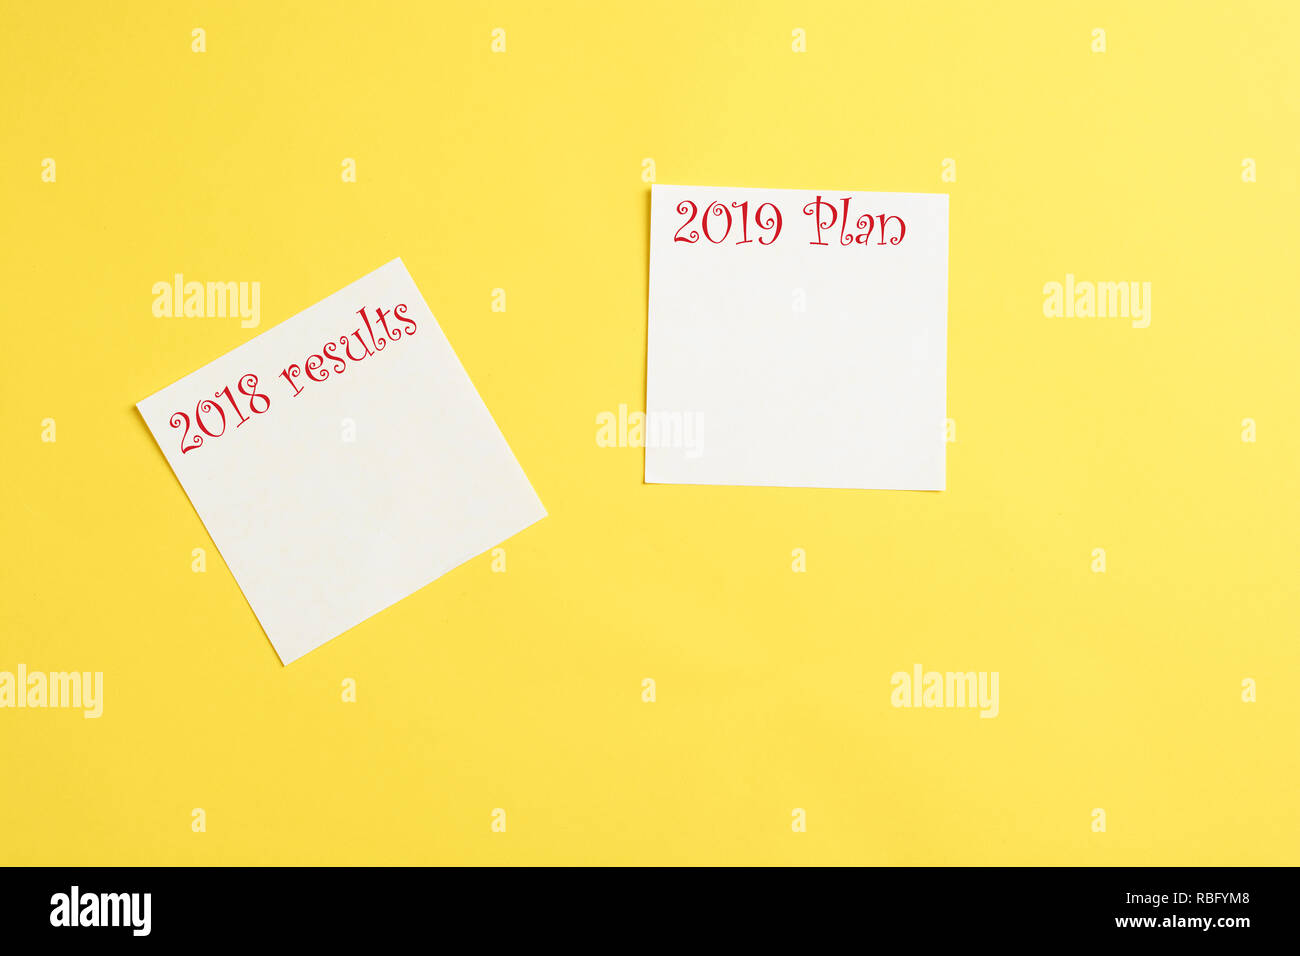 Make a goals list for 2019  Concept meaning asking about